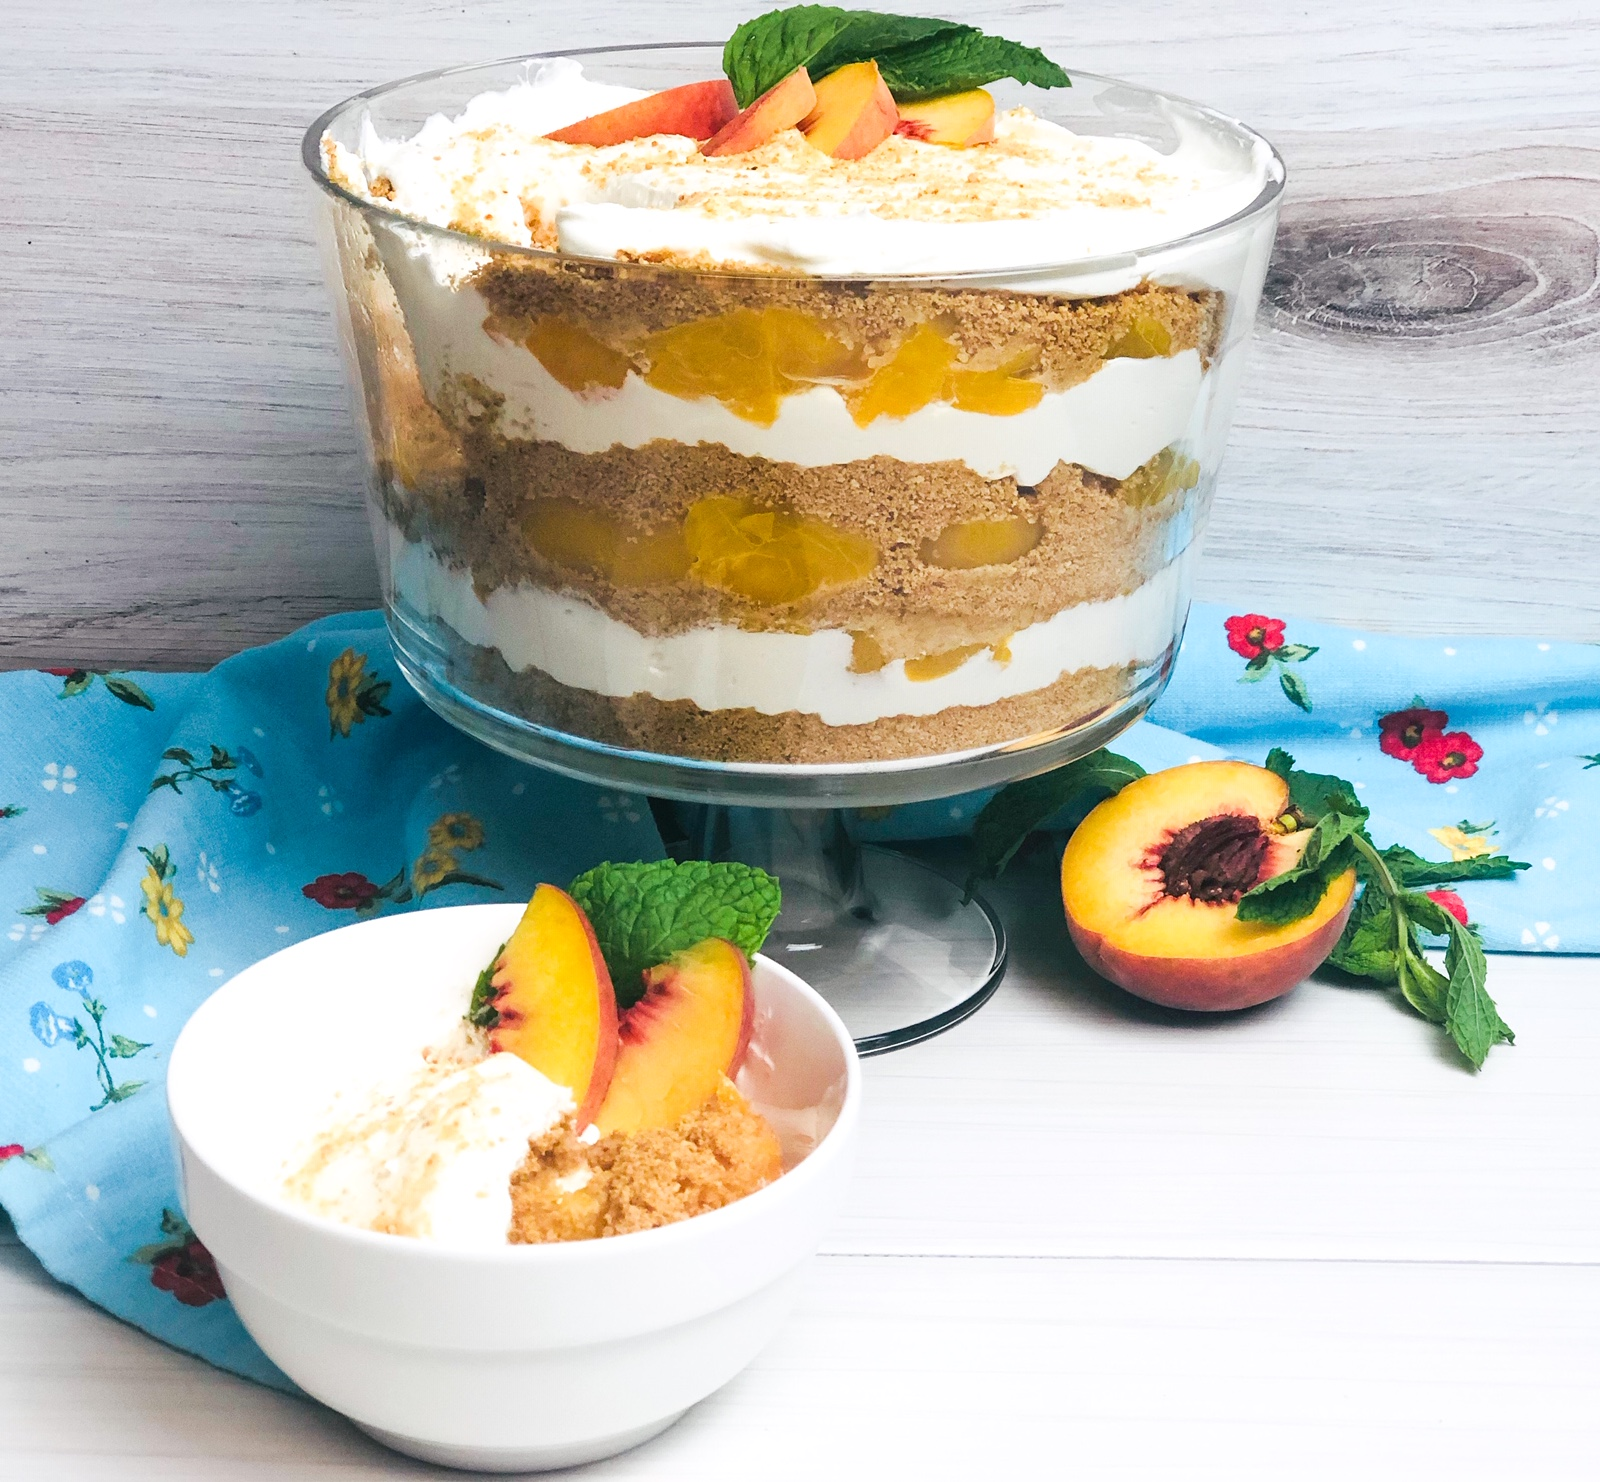 southern-peach-delight-recipe-heather-lucilles-kitchen-food-blog